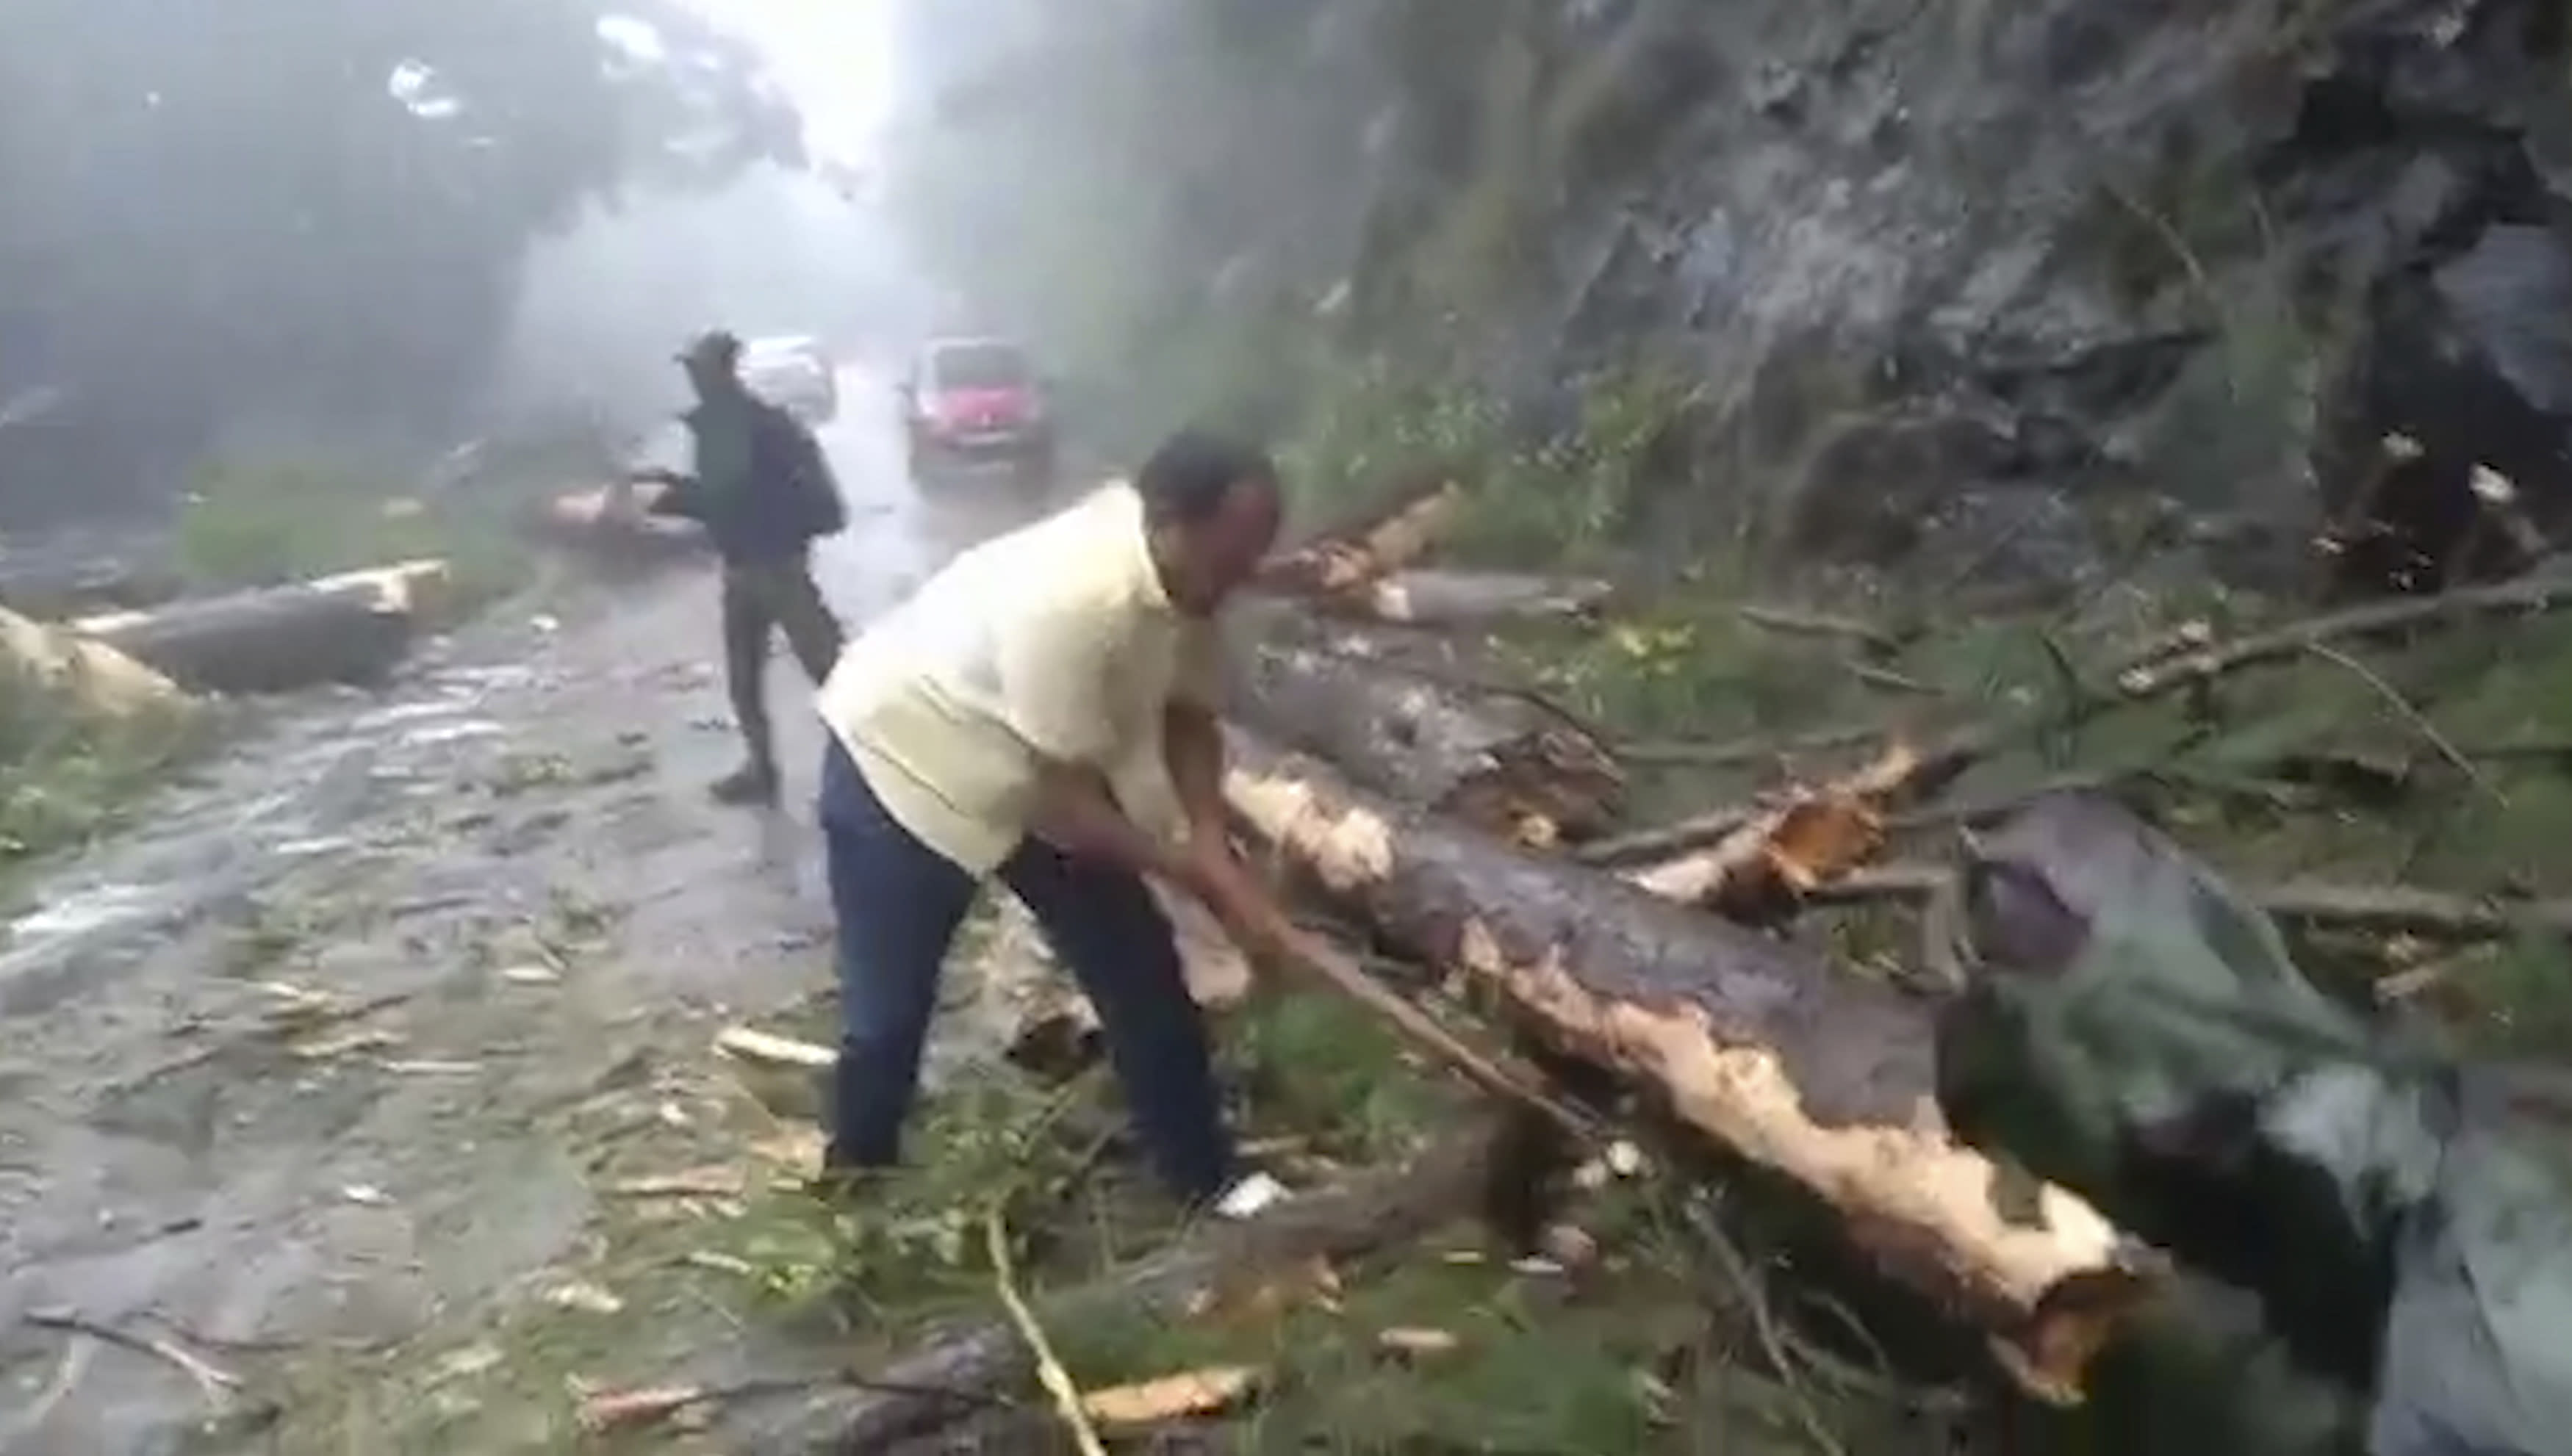 In this grab made from video provided by KK Productions, a man chops branches from a tree to clear a road after a cyclone struck Cuddalore, in the southern Indian state of Tamil Nadu, Friday, Nov. 16, 2018. A cyclone hit the coast of southern India on Friday, killing more than 10 people and damaging homes after more than 80,000 residents were evacuated. (KK Production via AP)